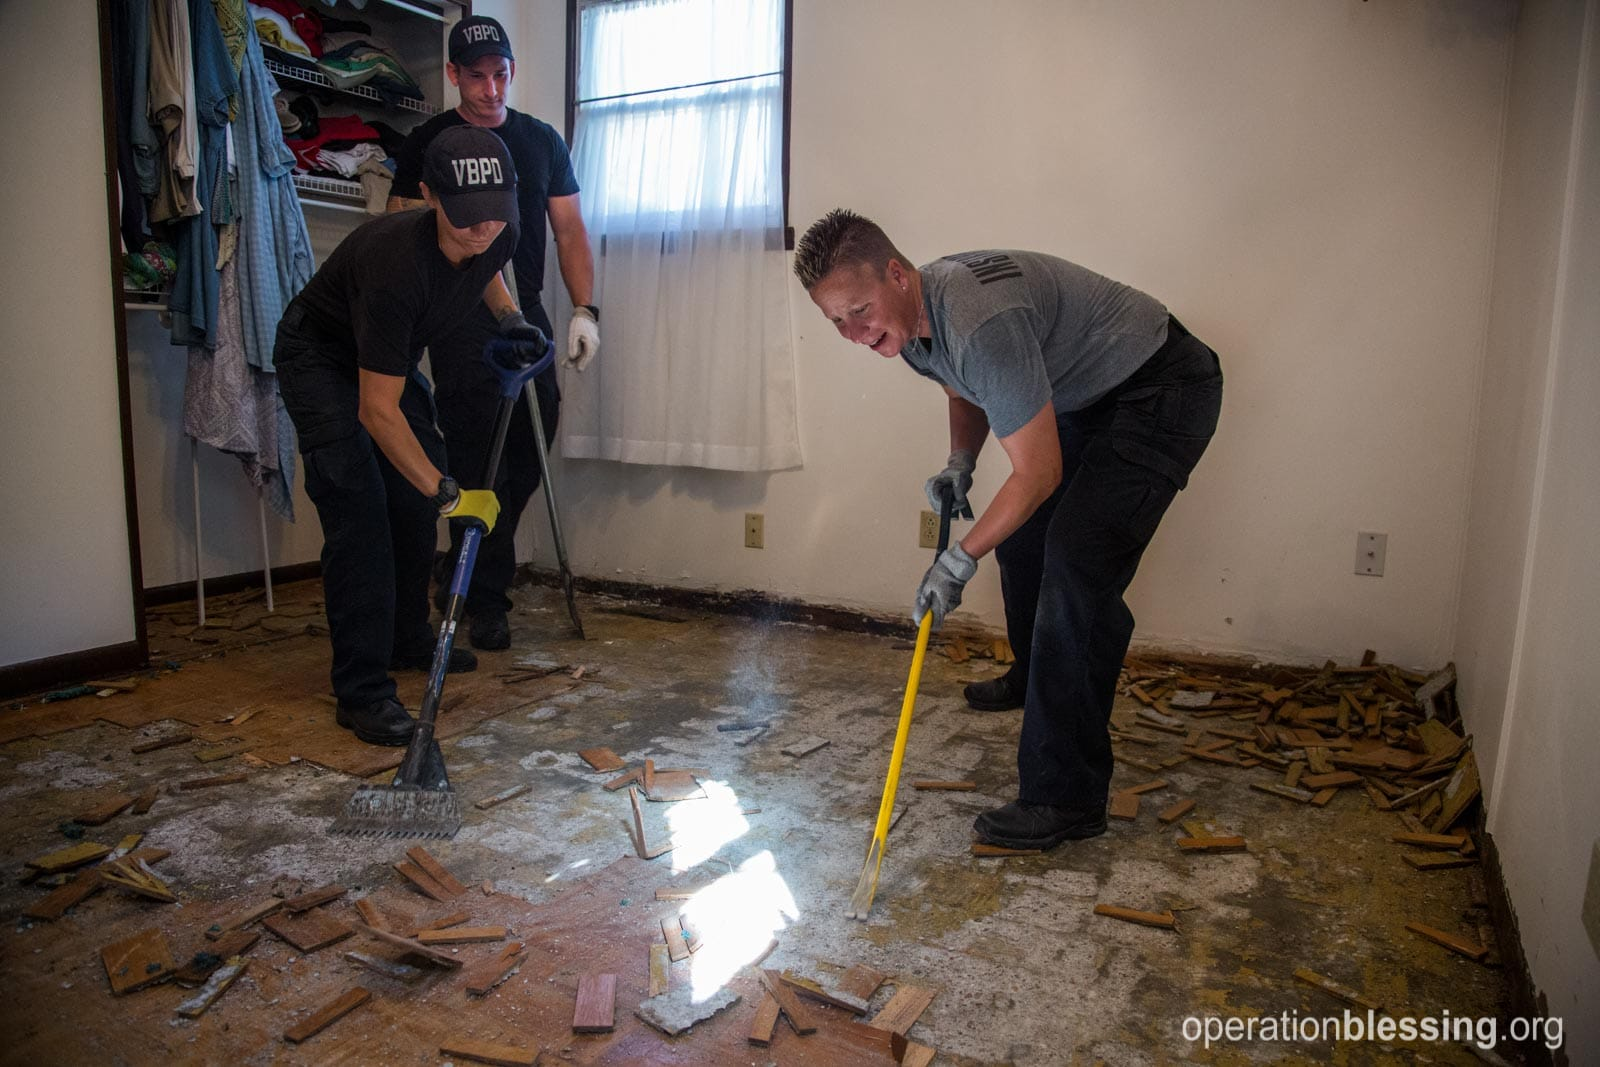 Police recruits serve at Ellen's house tearing up the damaged floor.